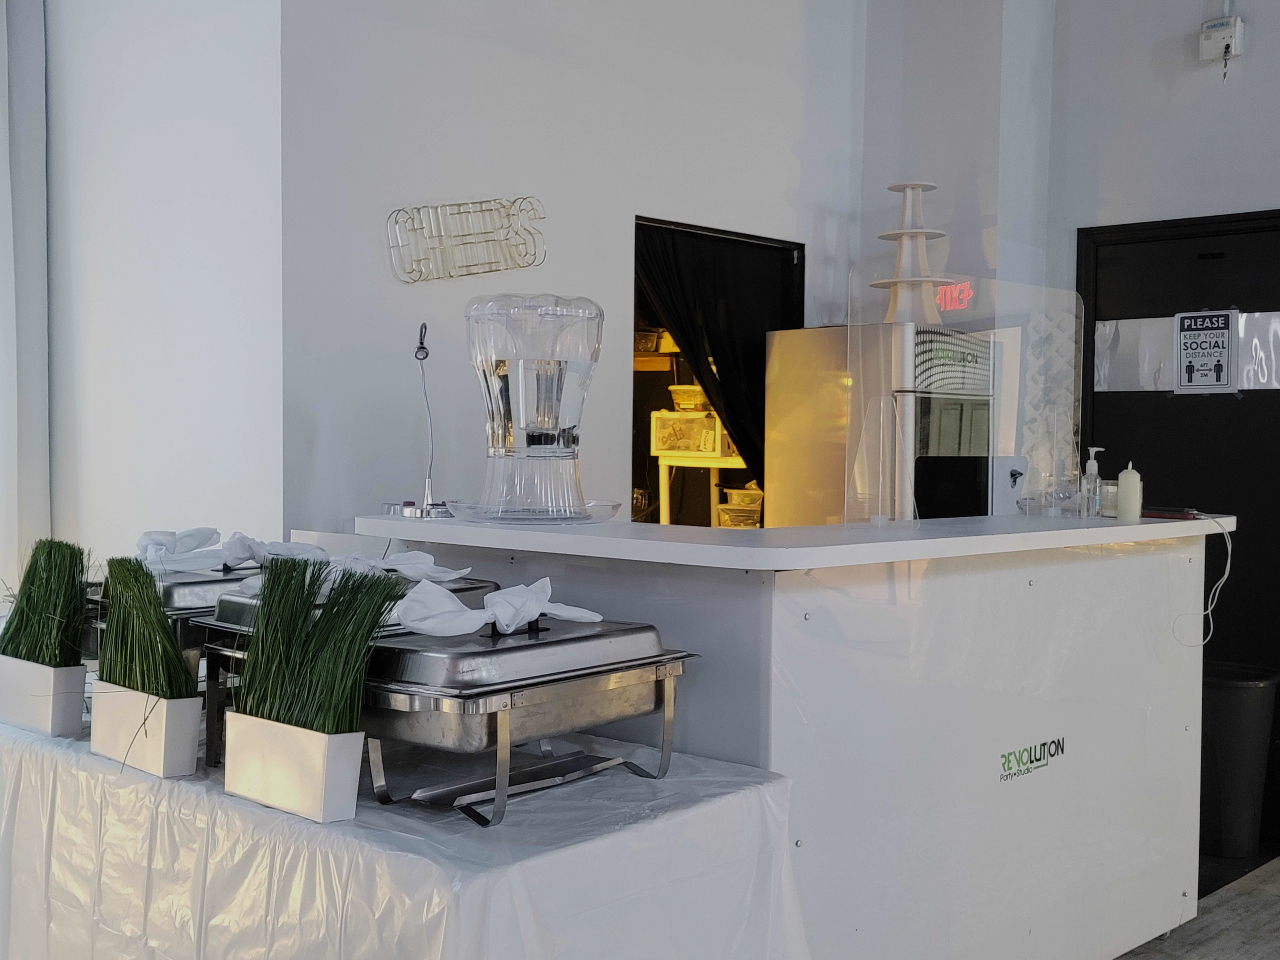 Countertop with kitchen equipment and chocolate fountain